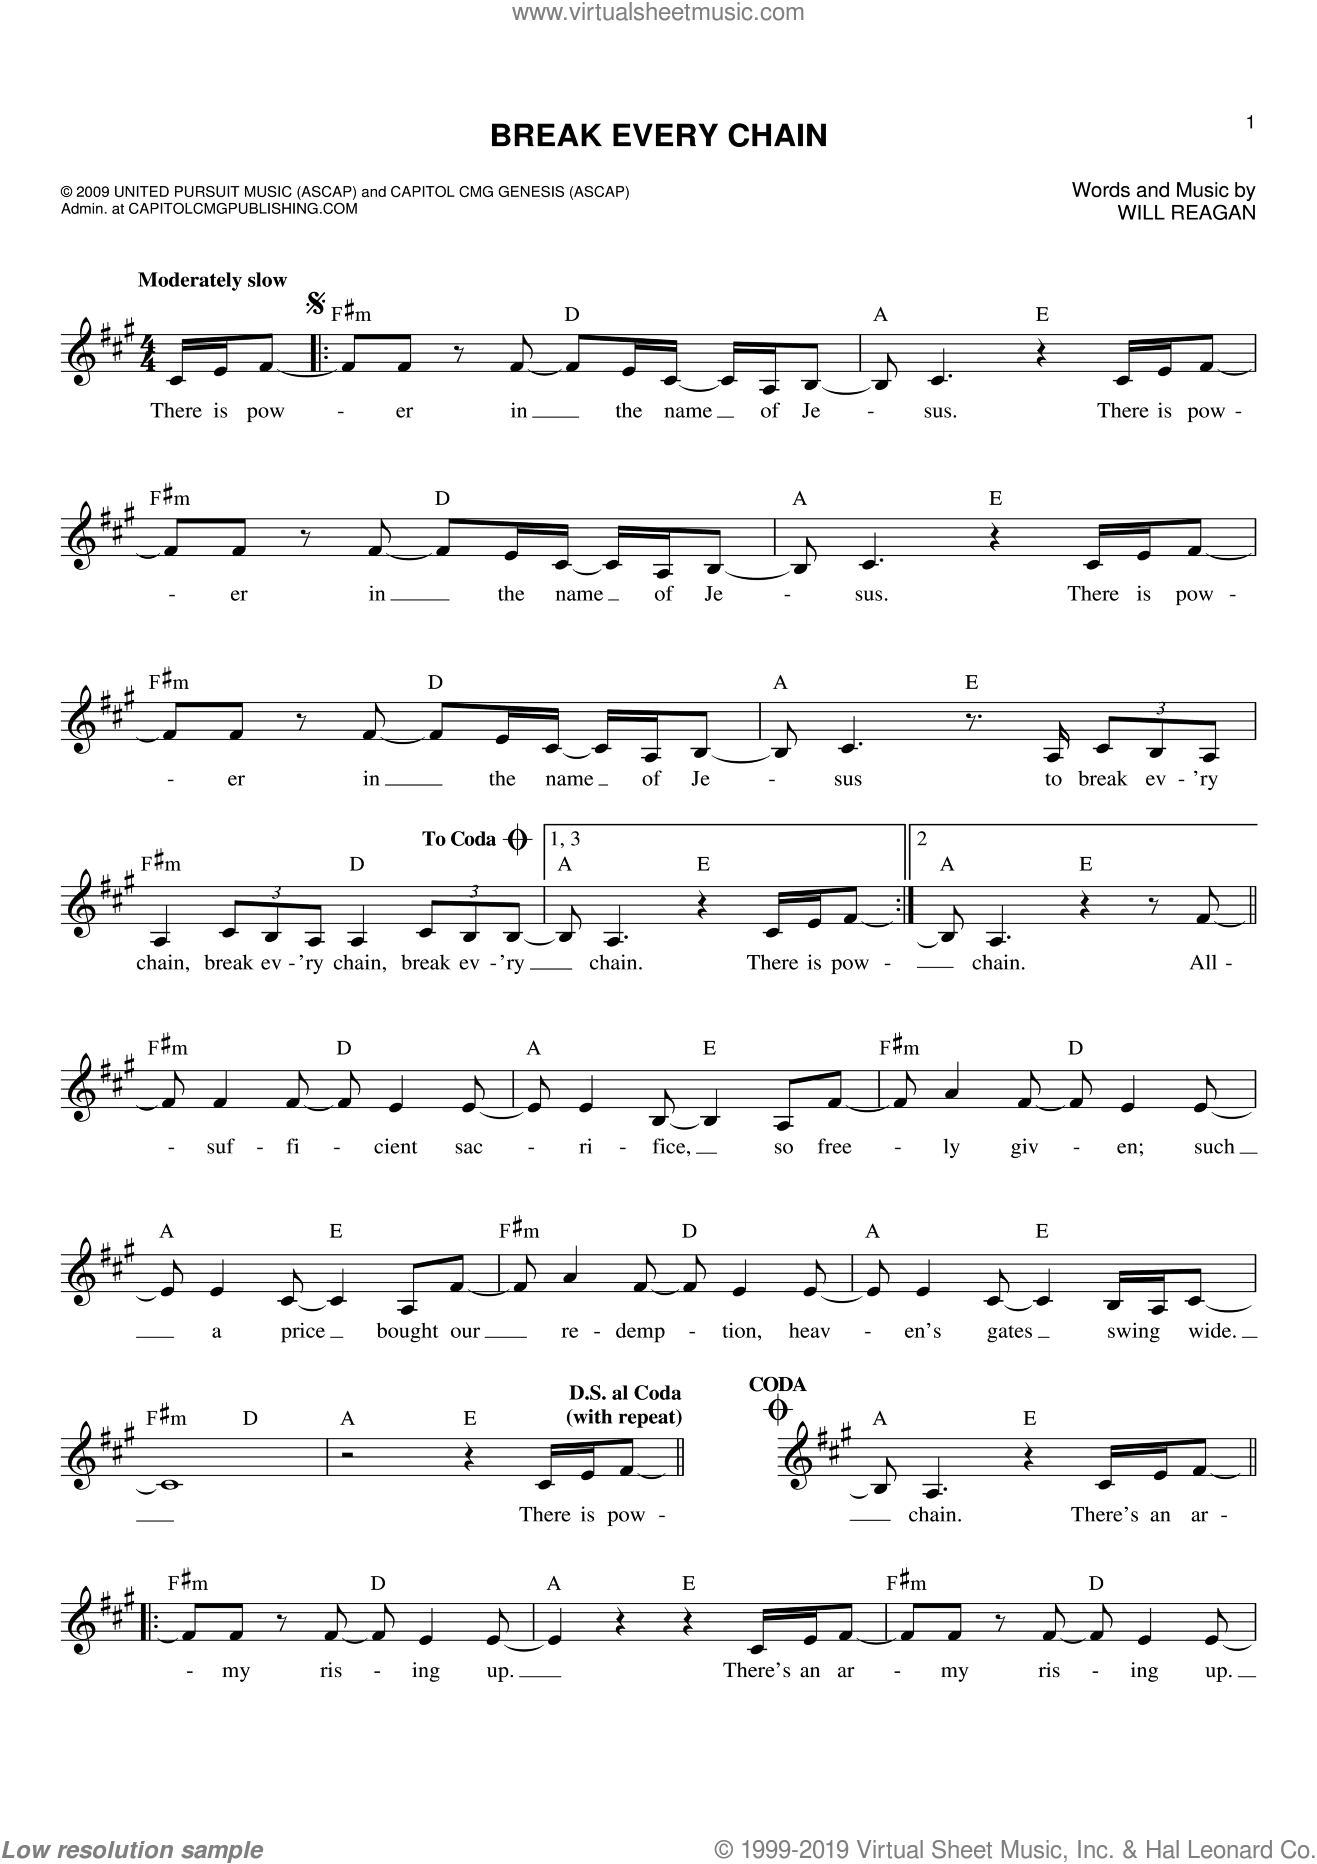 Break Every Chain sheet music for voice and other instruments (fake book) by Will Reagan, intermediate skill level